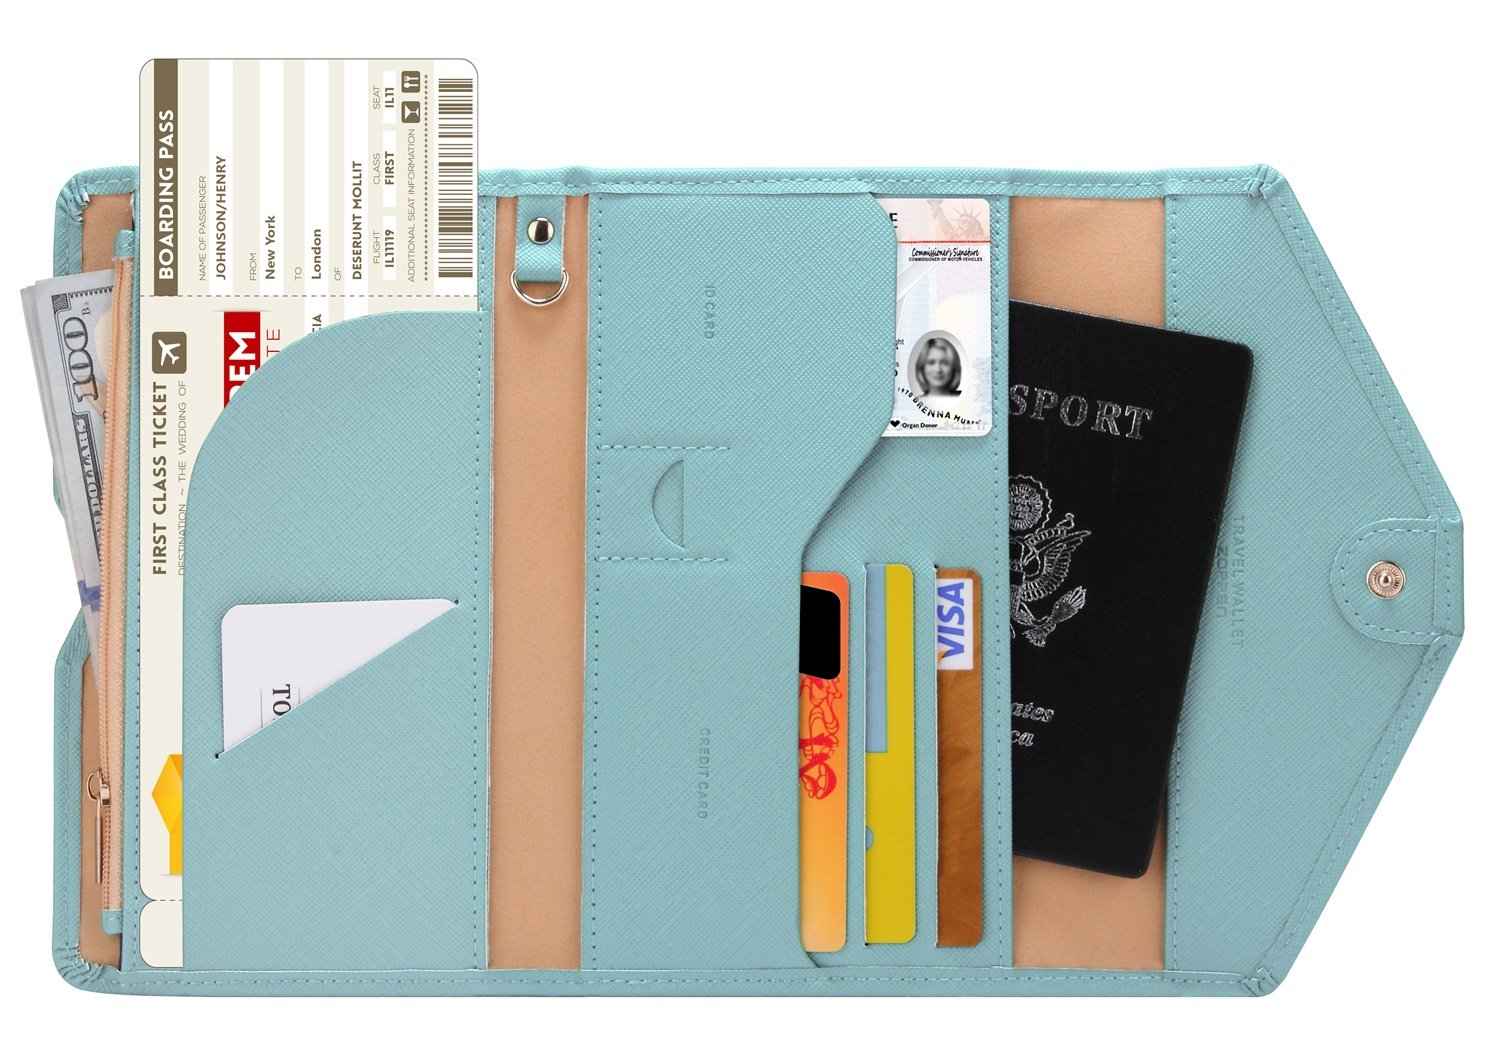 Zoppen Multi-purpose Rfid Blocking Travel Passport Wallet (Ver.4) Tri-fold Document...